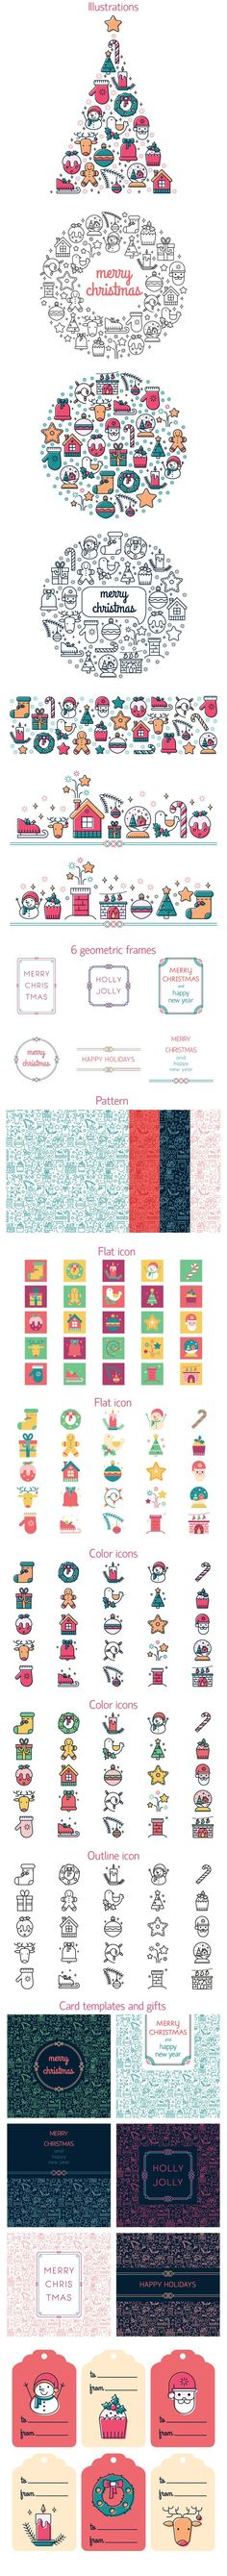 Christmas colored icon set. Christmas Icons. $15.00